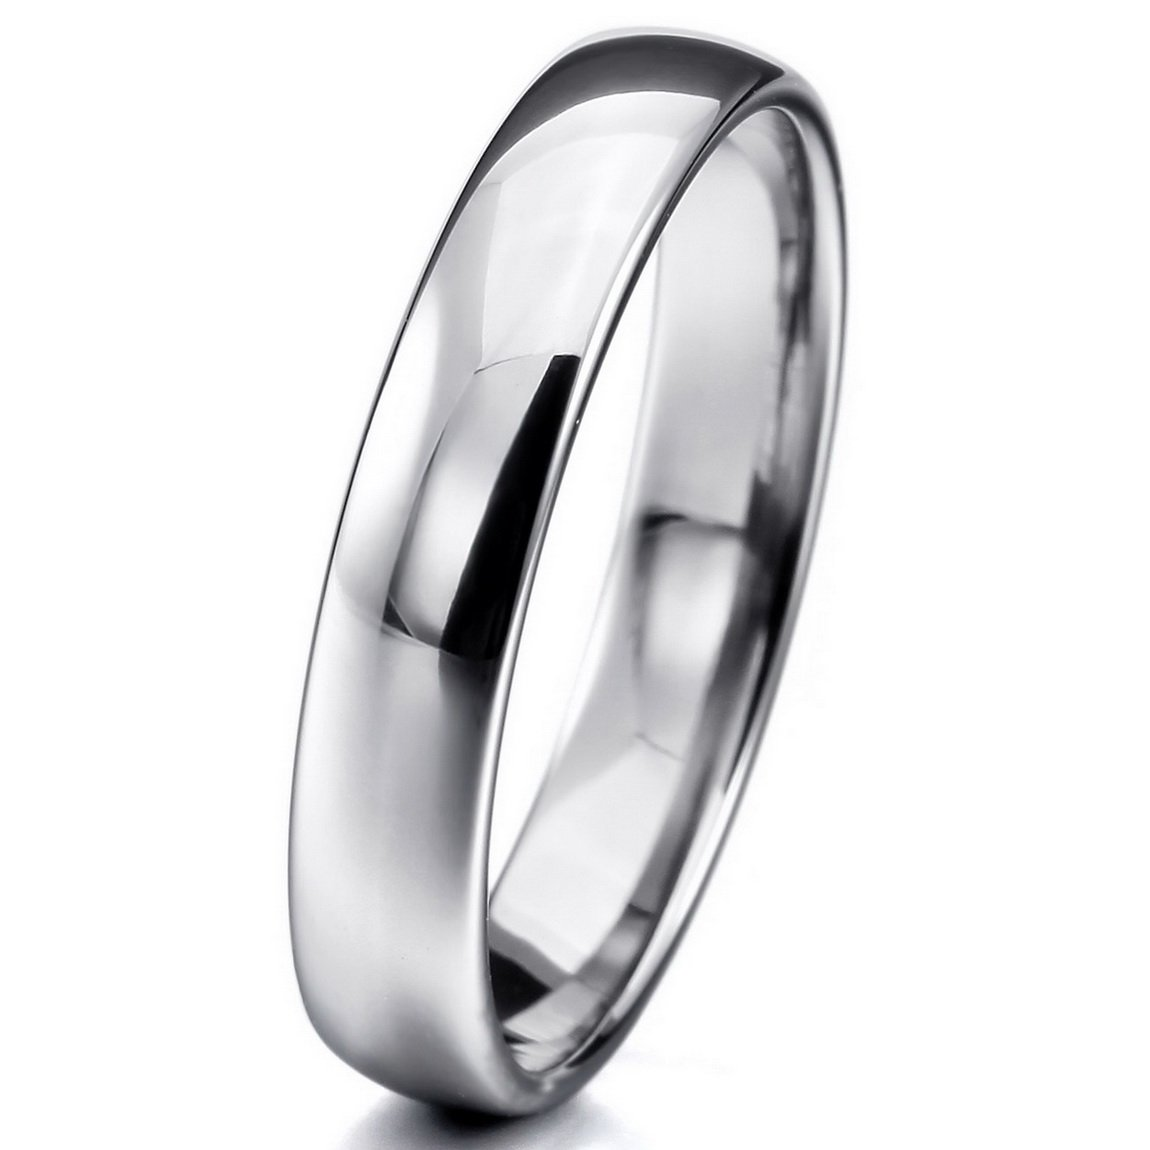 INBLUE Men,Women's Wide 4mm Tungsten ring Band Silver Tone Comfort Fit Wedding Size12